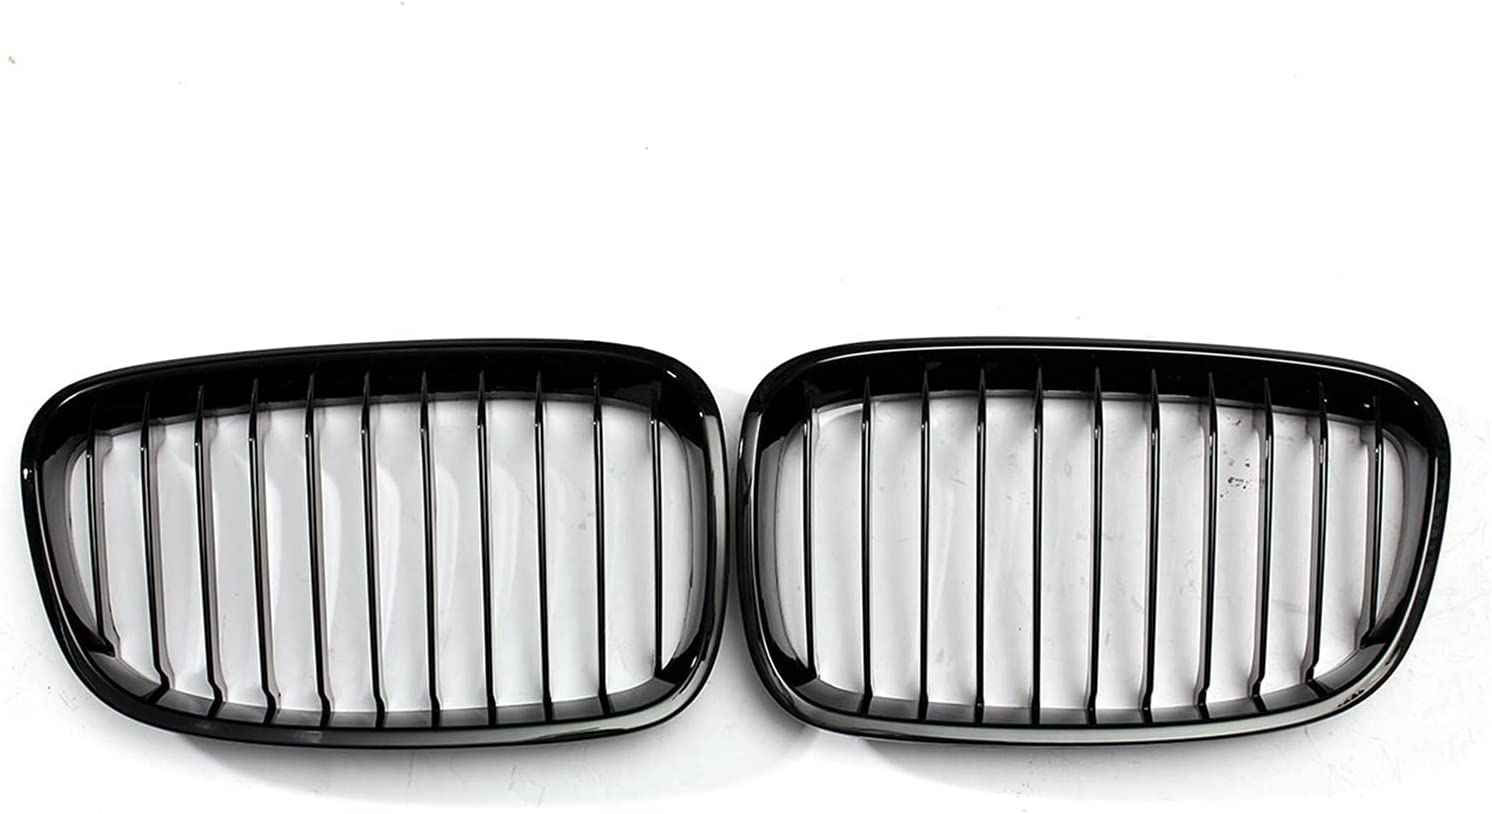 Bumper El Paso Mall Grille Car Front Hood Racing Luxury goods Grill f Kidney